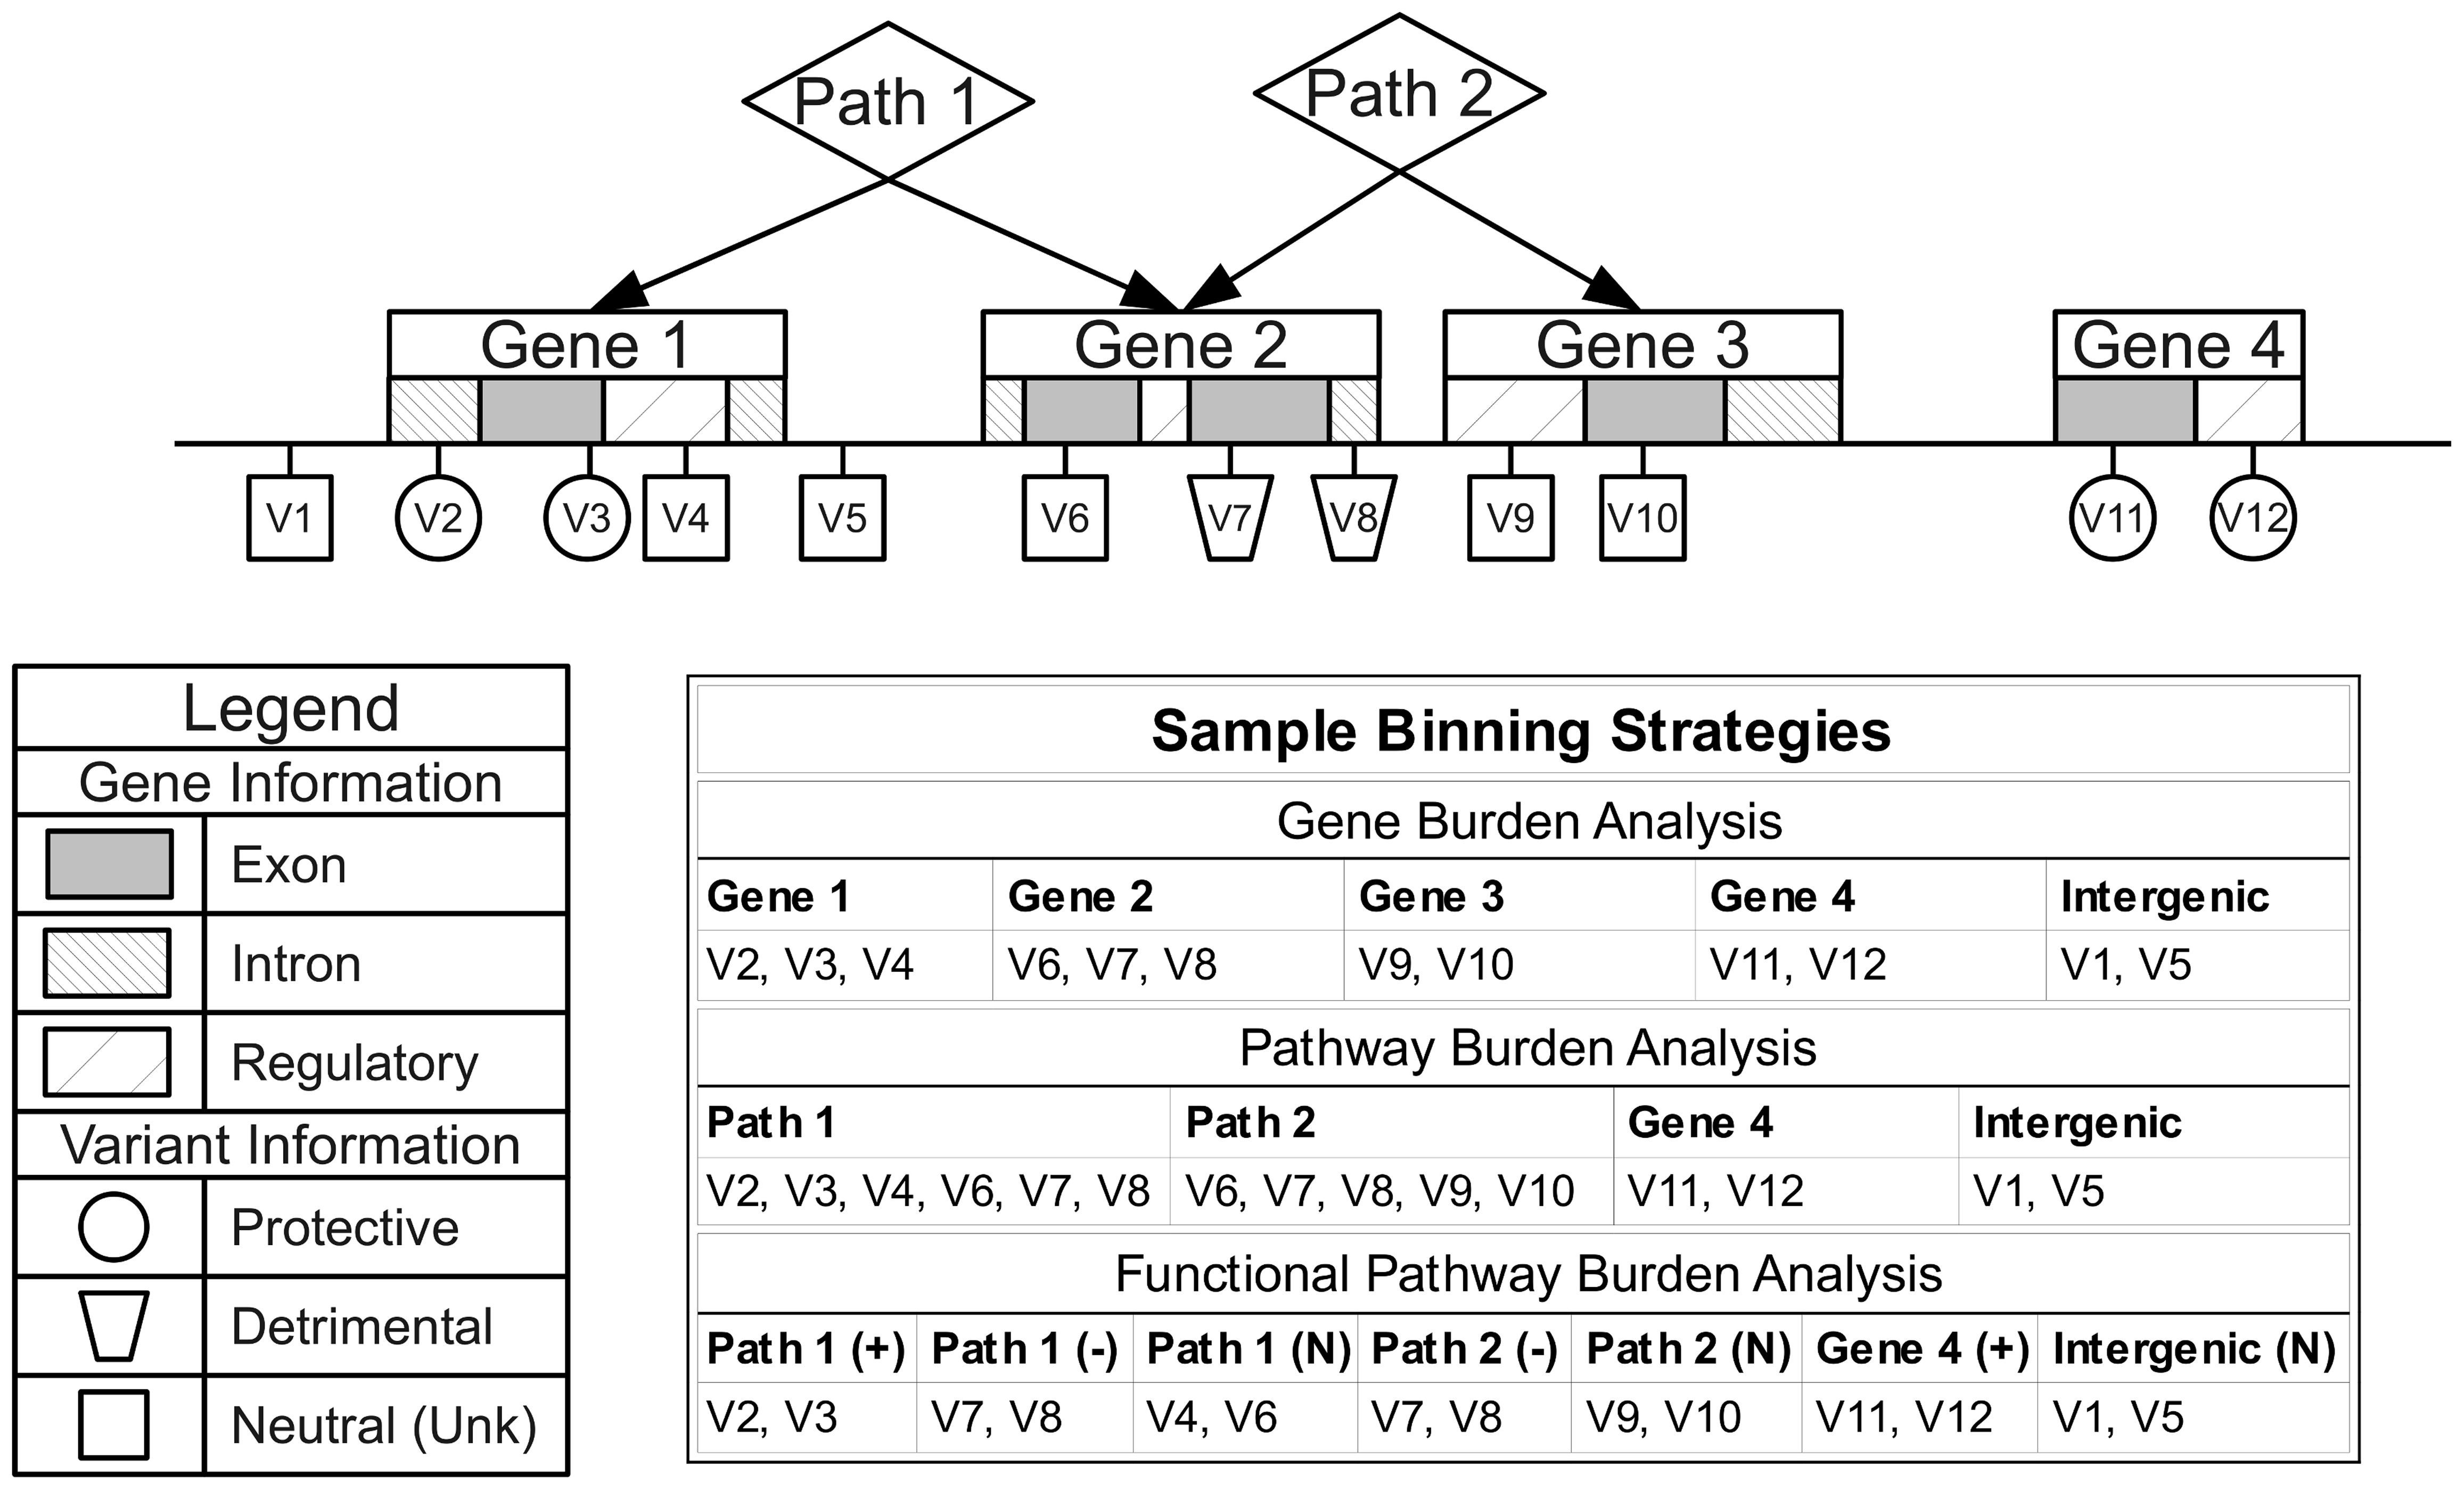 Alternate binning strategies using biological knowledge and functional or role annotations.